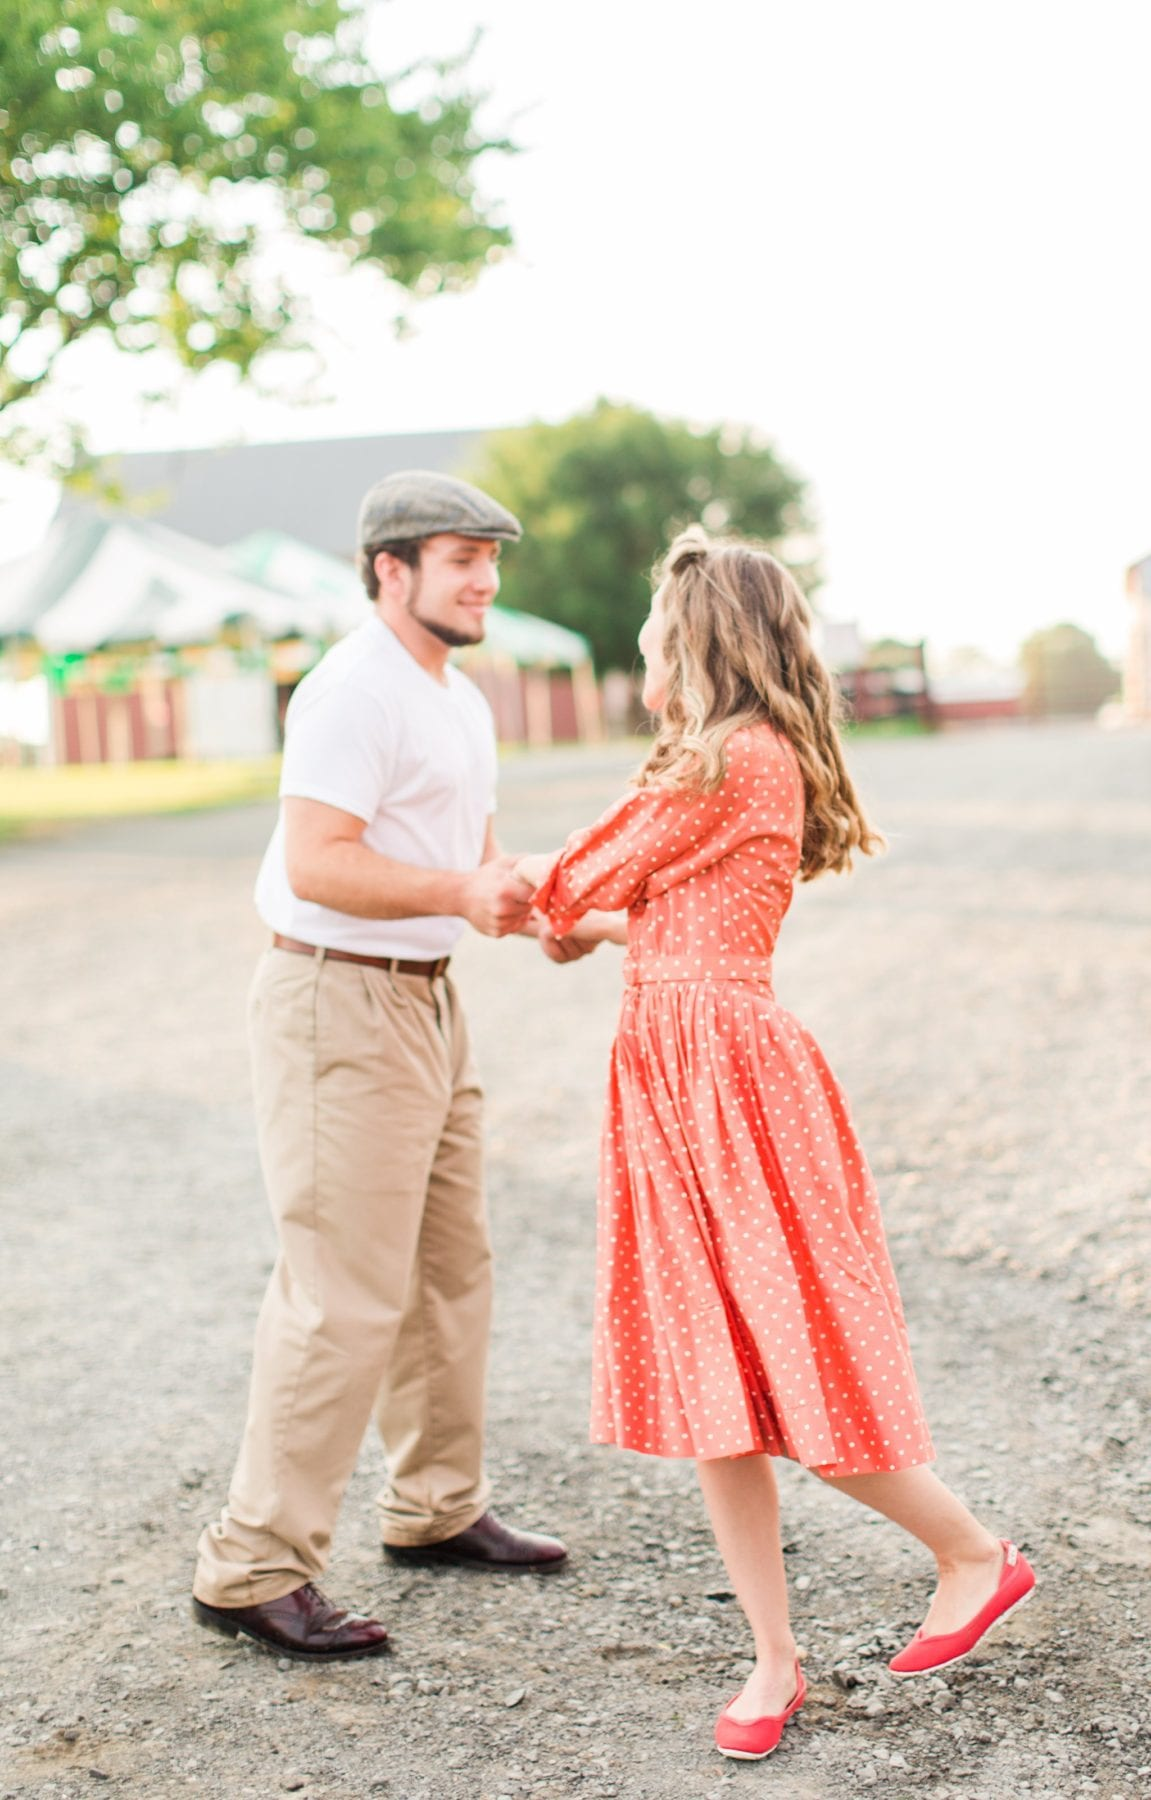 County Fair Engagement Photos Virginia Wedding Photographer Megan Kelsey Photography Samantha & Charles-90-cropped.jpg